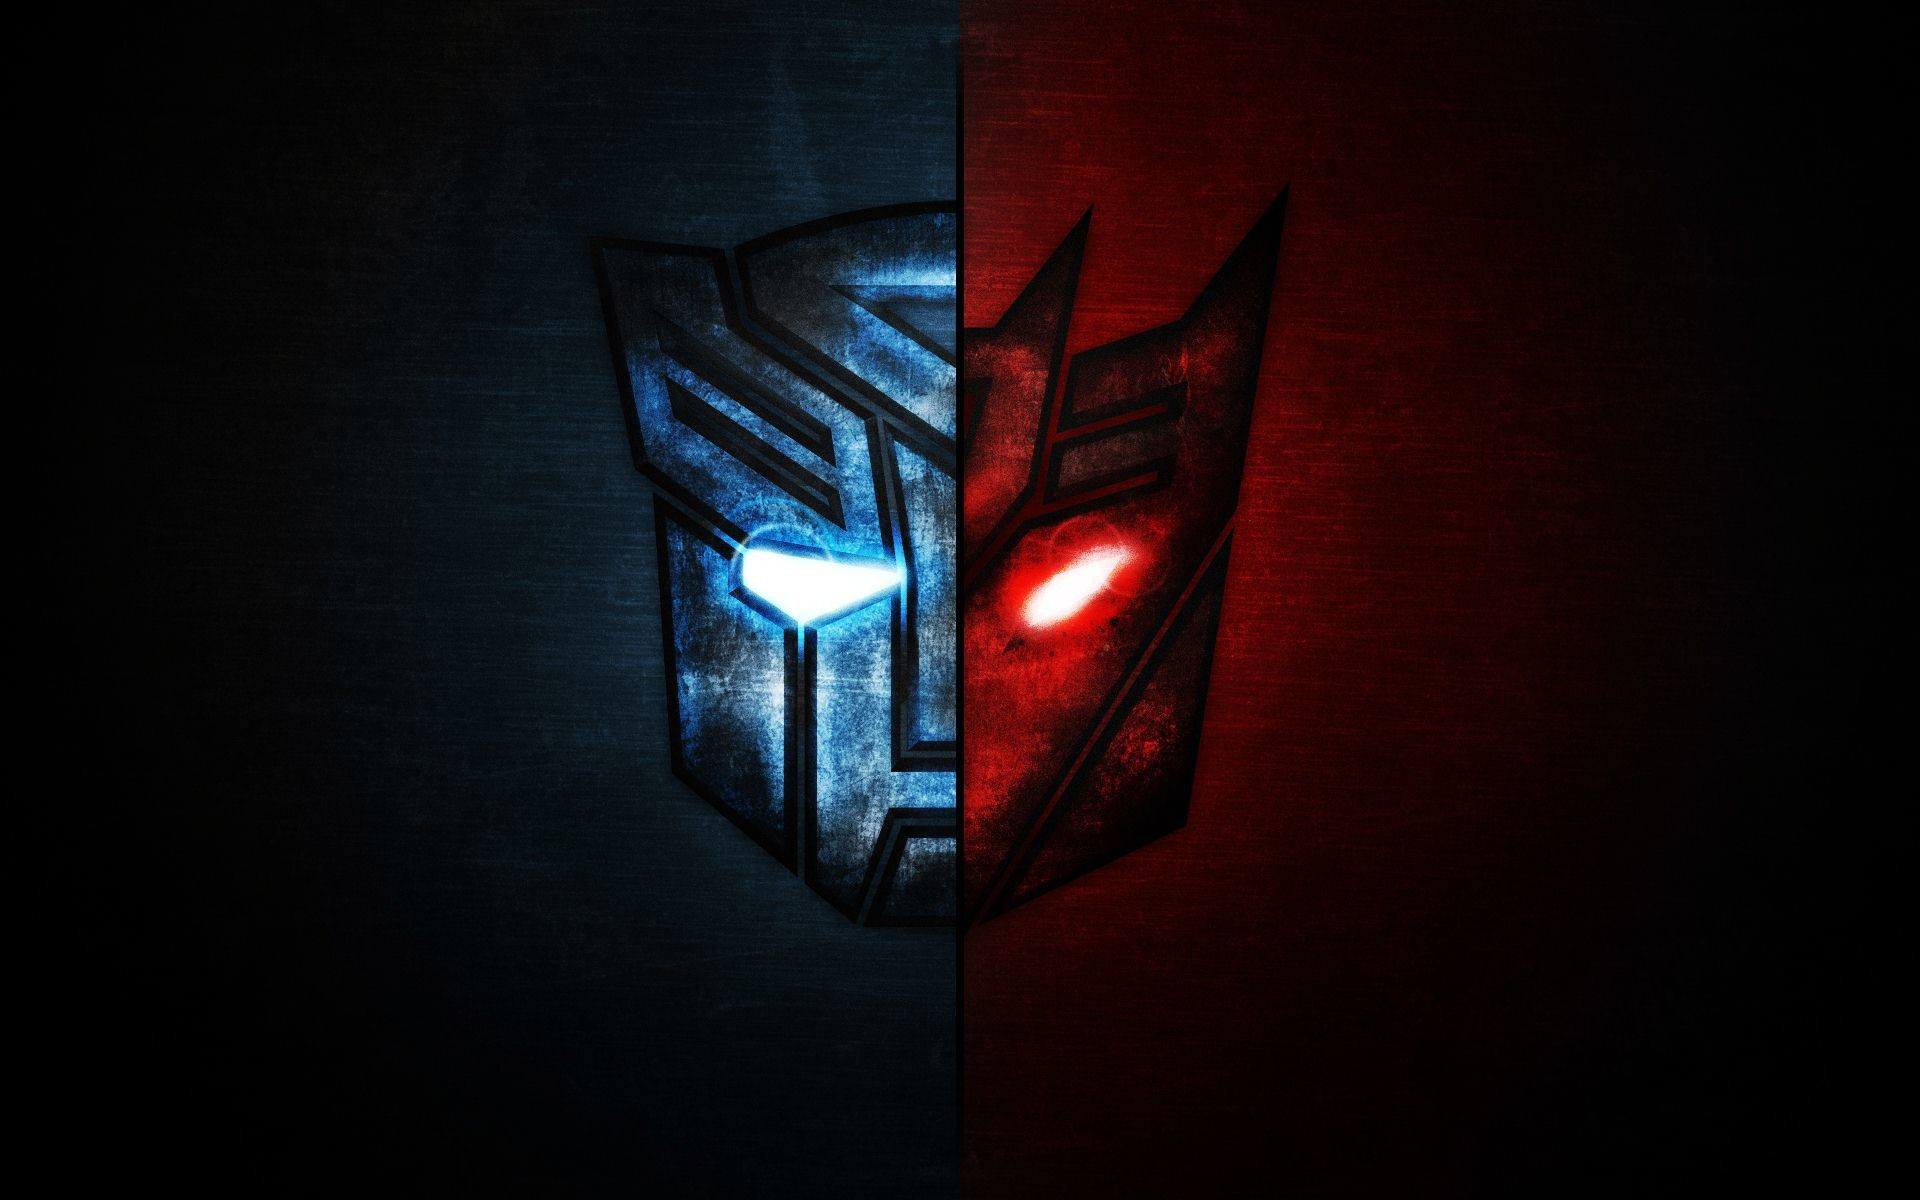 1920x1200 ... Autobots, Decepticons and Transformers Logos iPad Wallpapers .